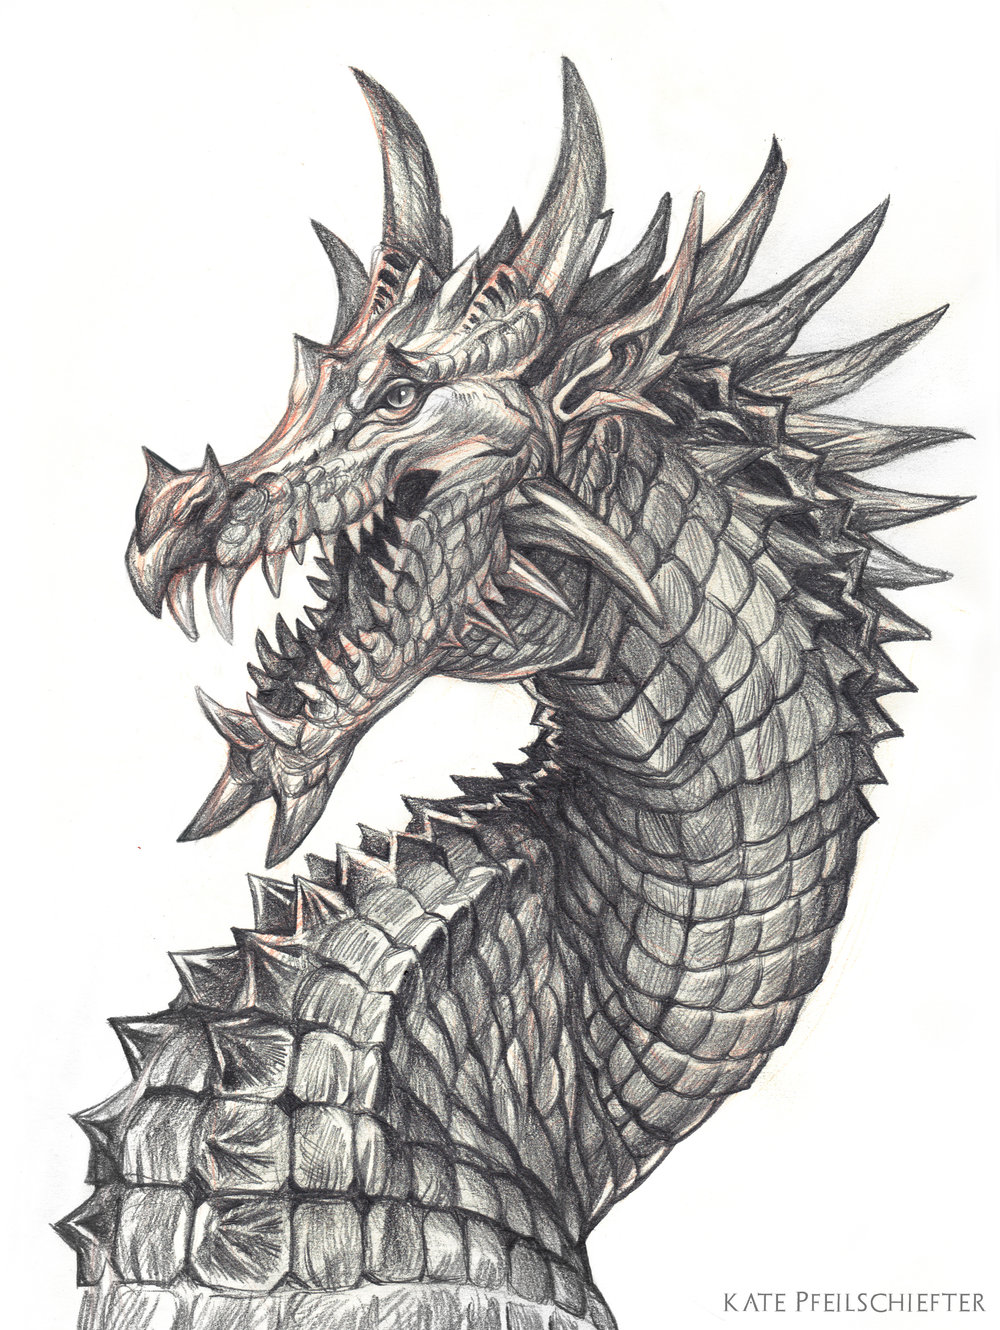 09-27-2017_twisted-dragon-3.jpg